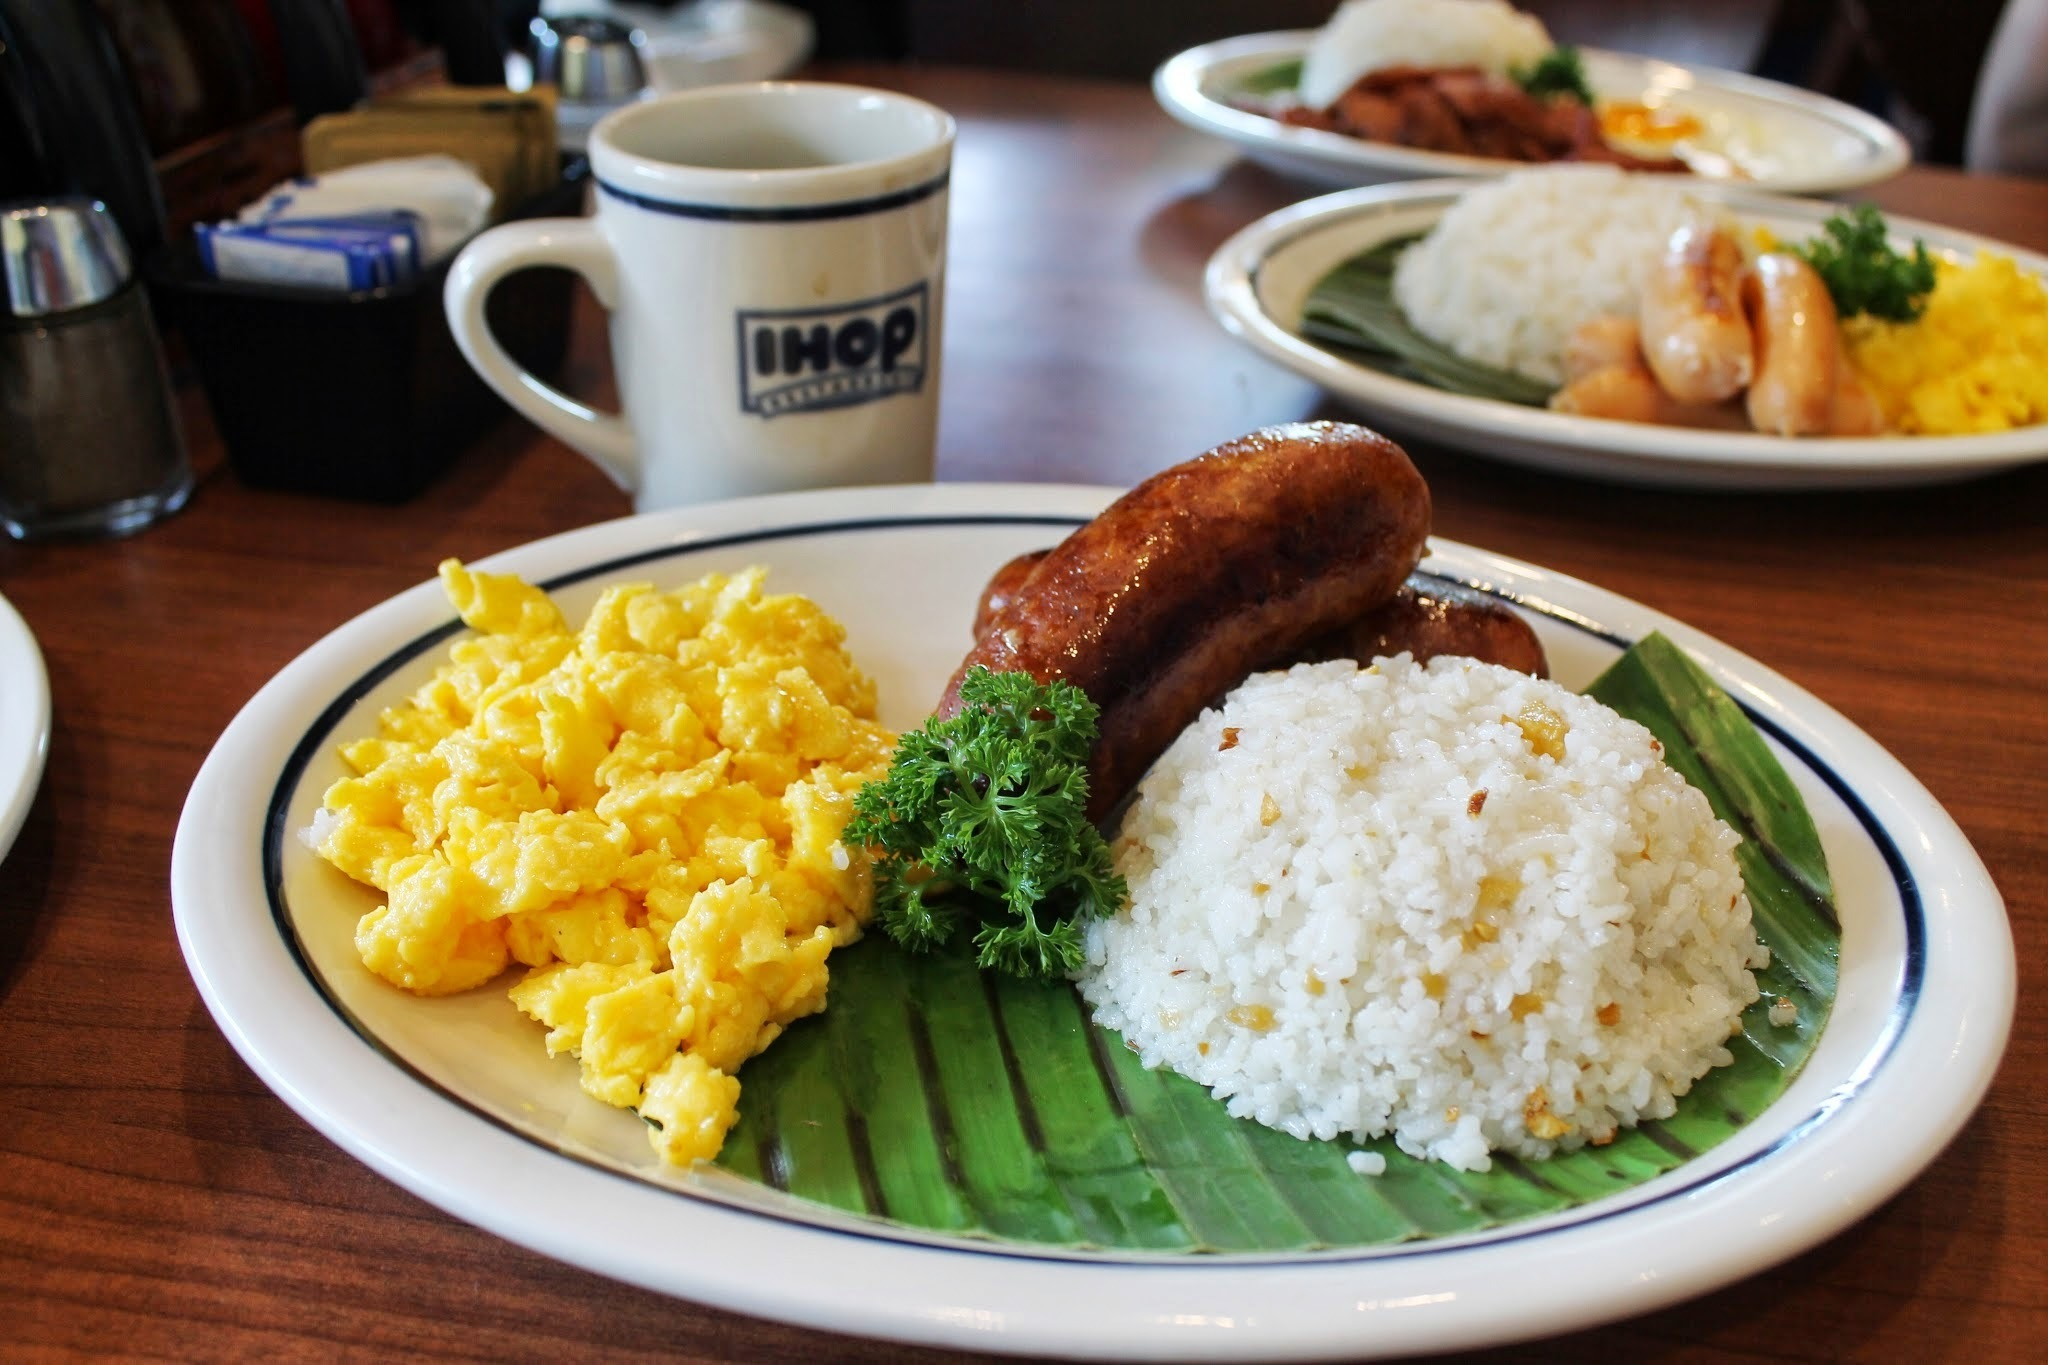 IHOP Rsstaurant's Filipino Breakfast Dishes